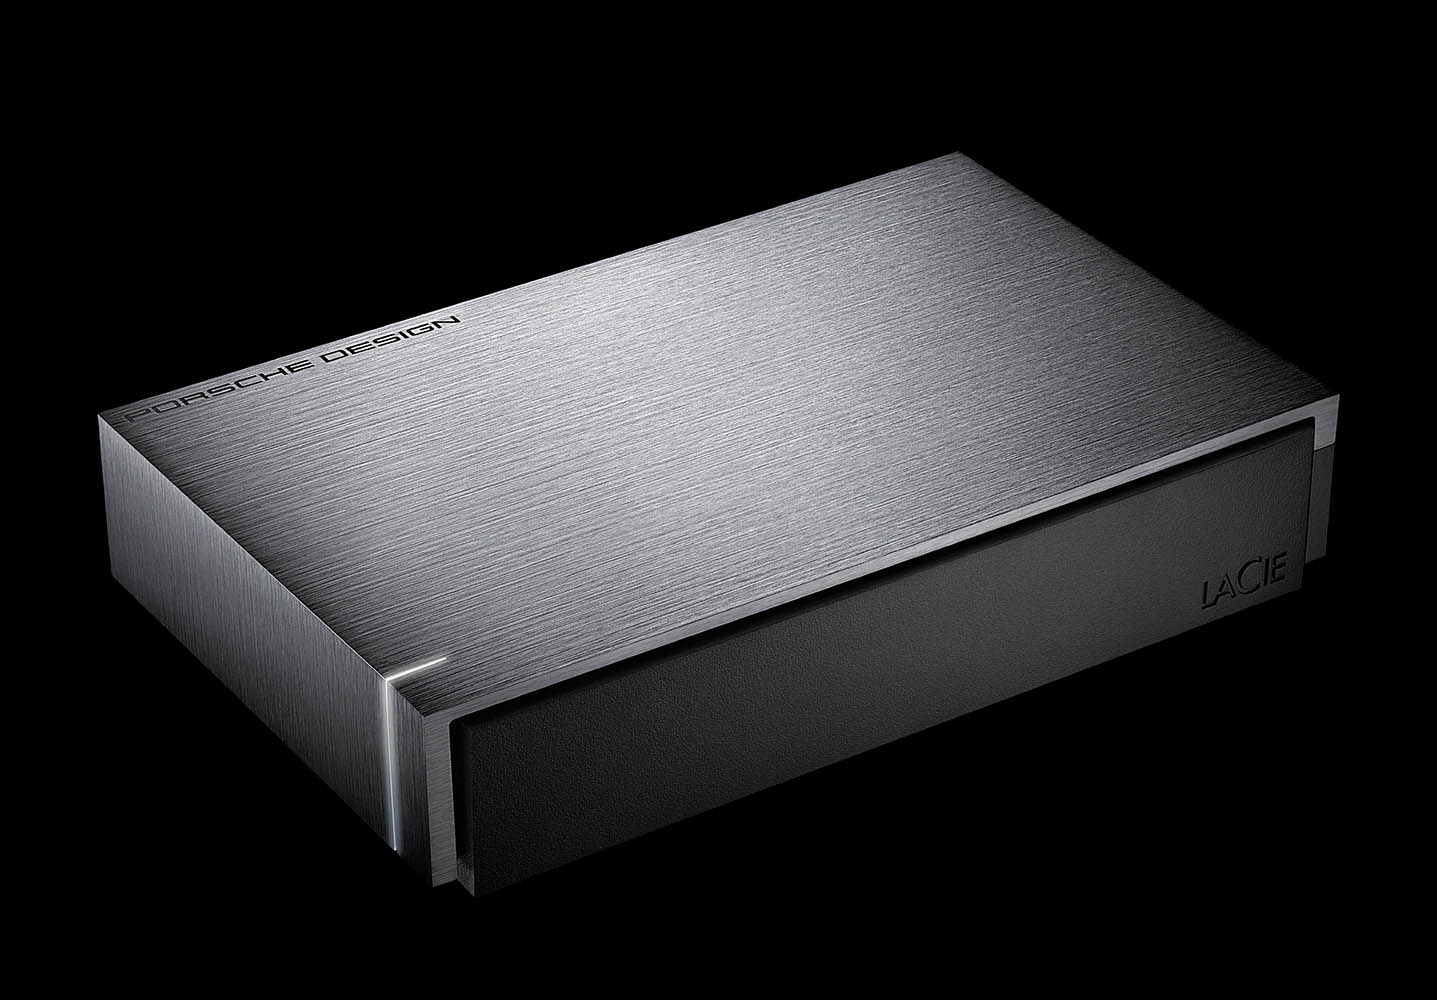 porsche_Design_harddrive_emotional_product_photography